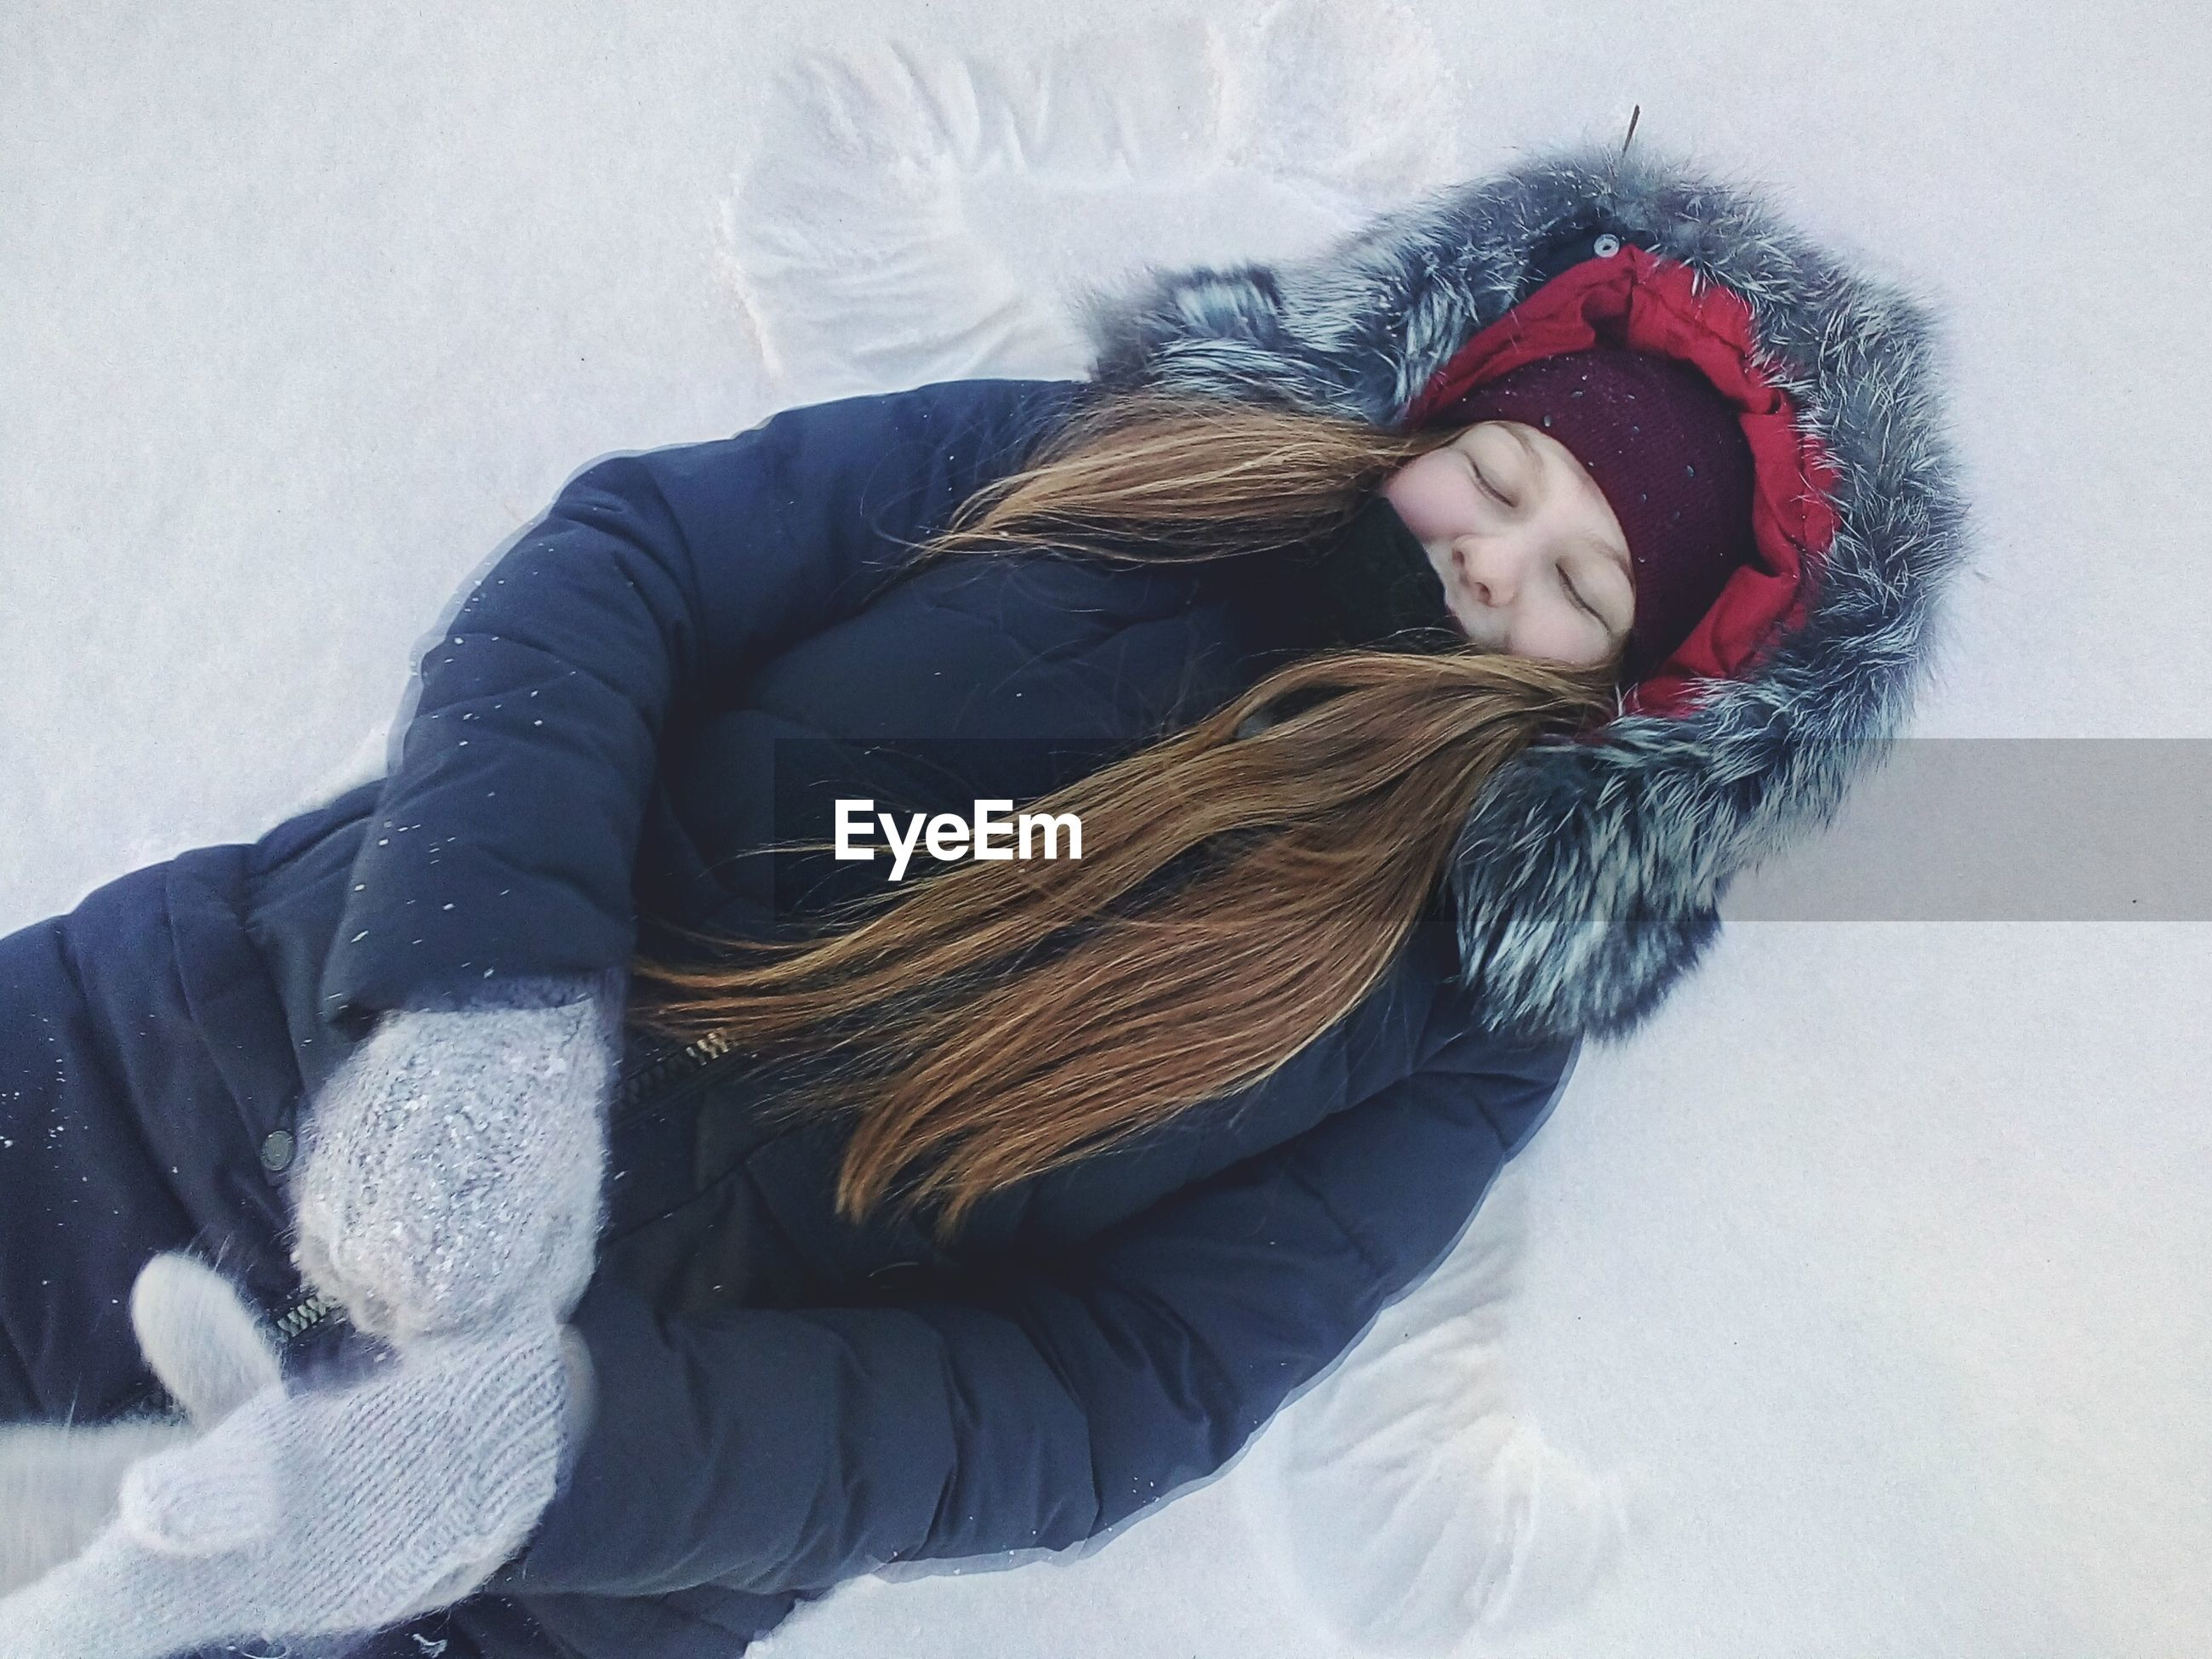 Woman in warm clothing lying down on snow